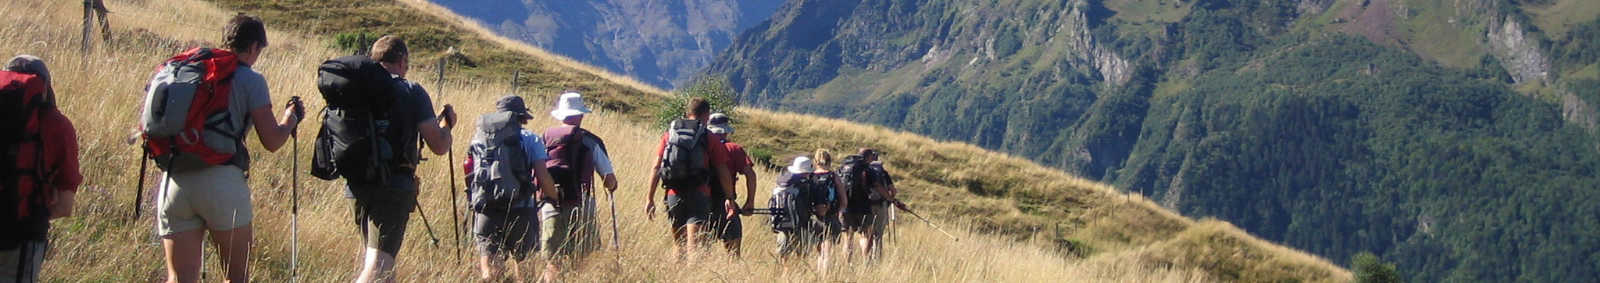 GR10 route in the Pyrenees